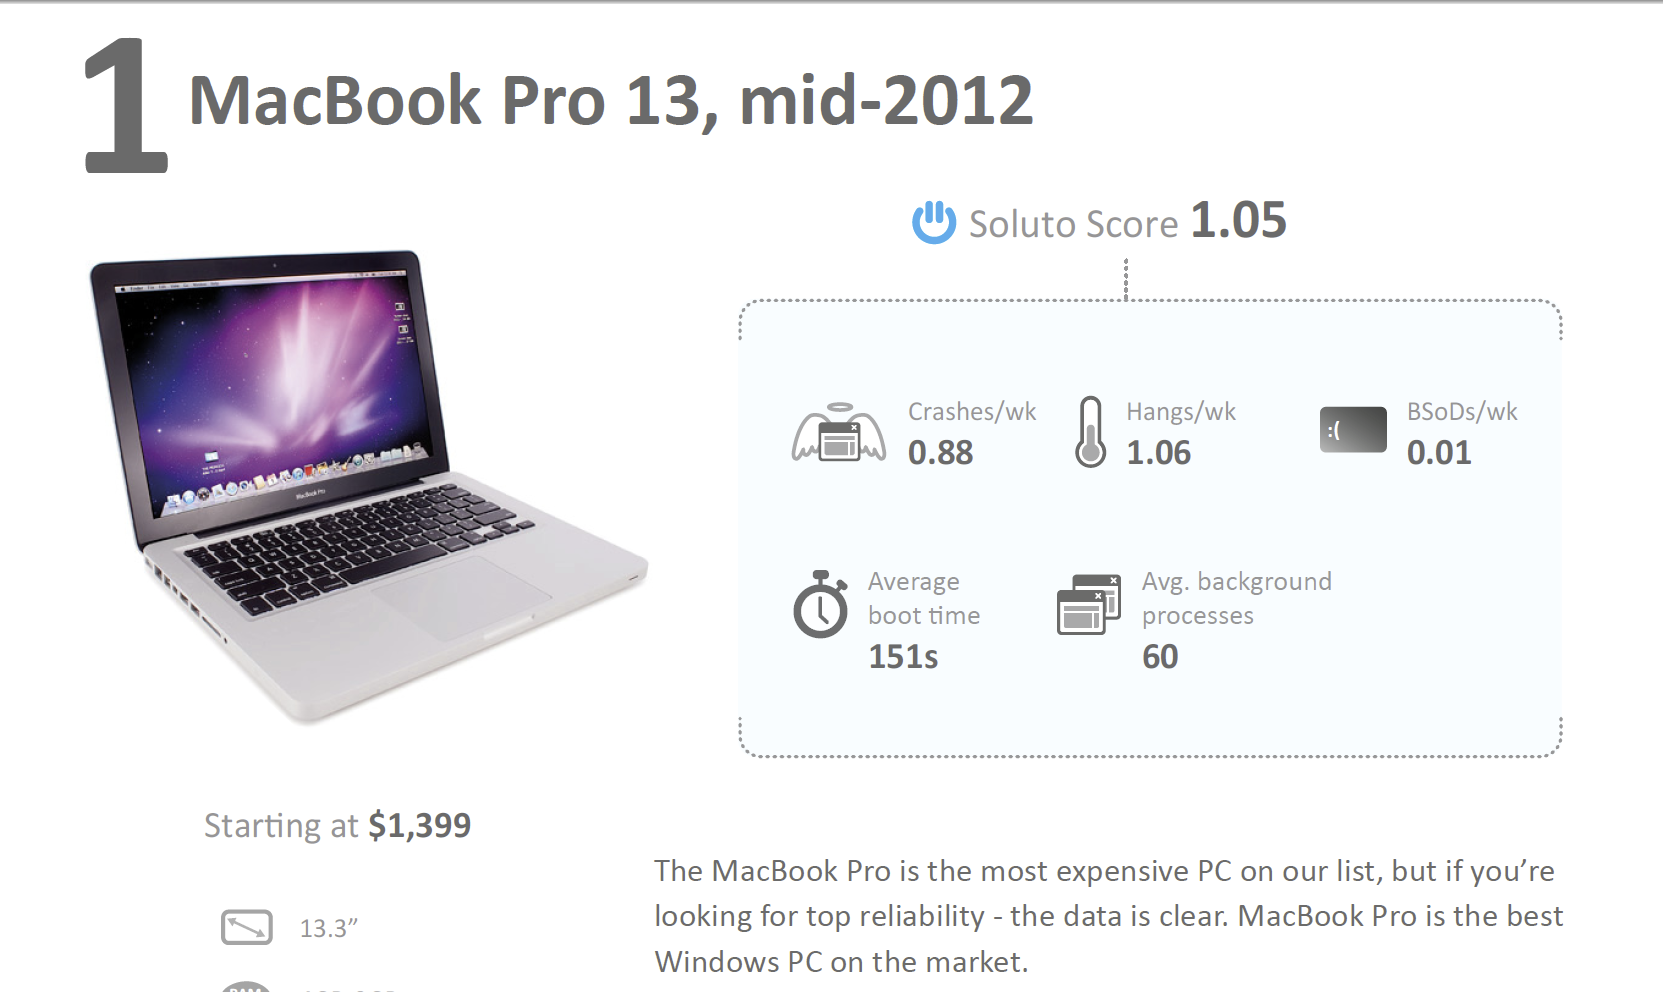 The most reliable Windows laptop is a Mac, says Soluto